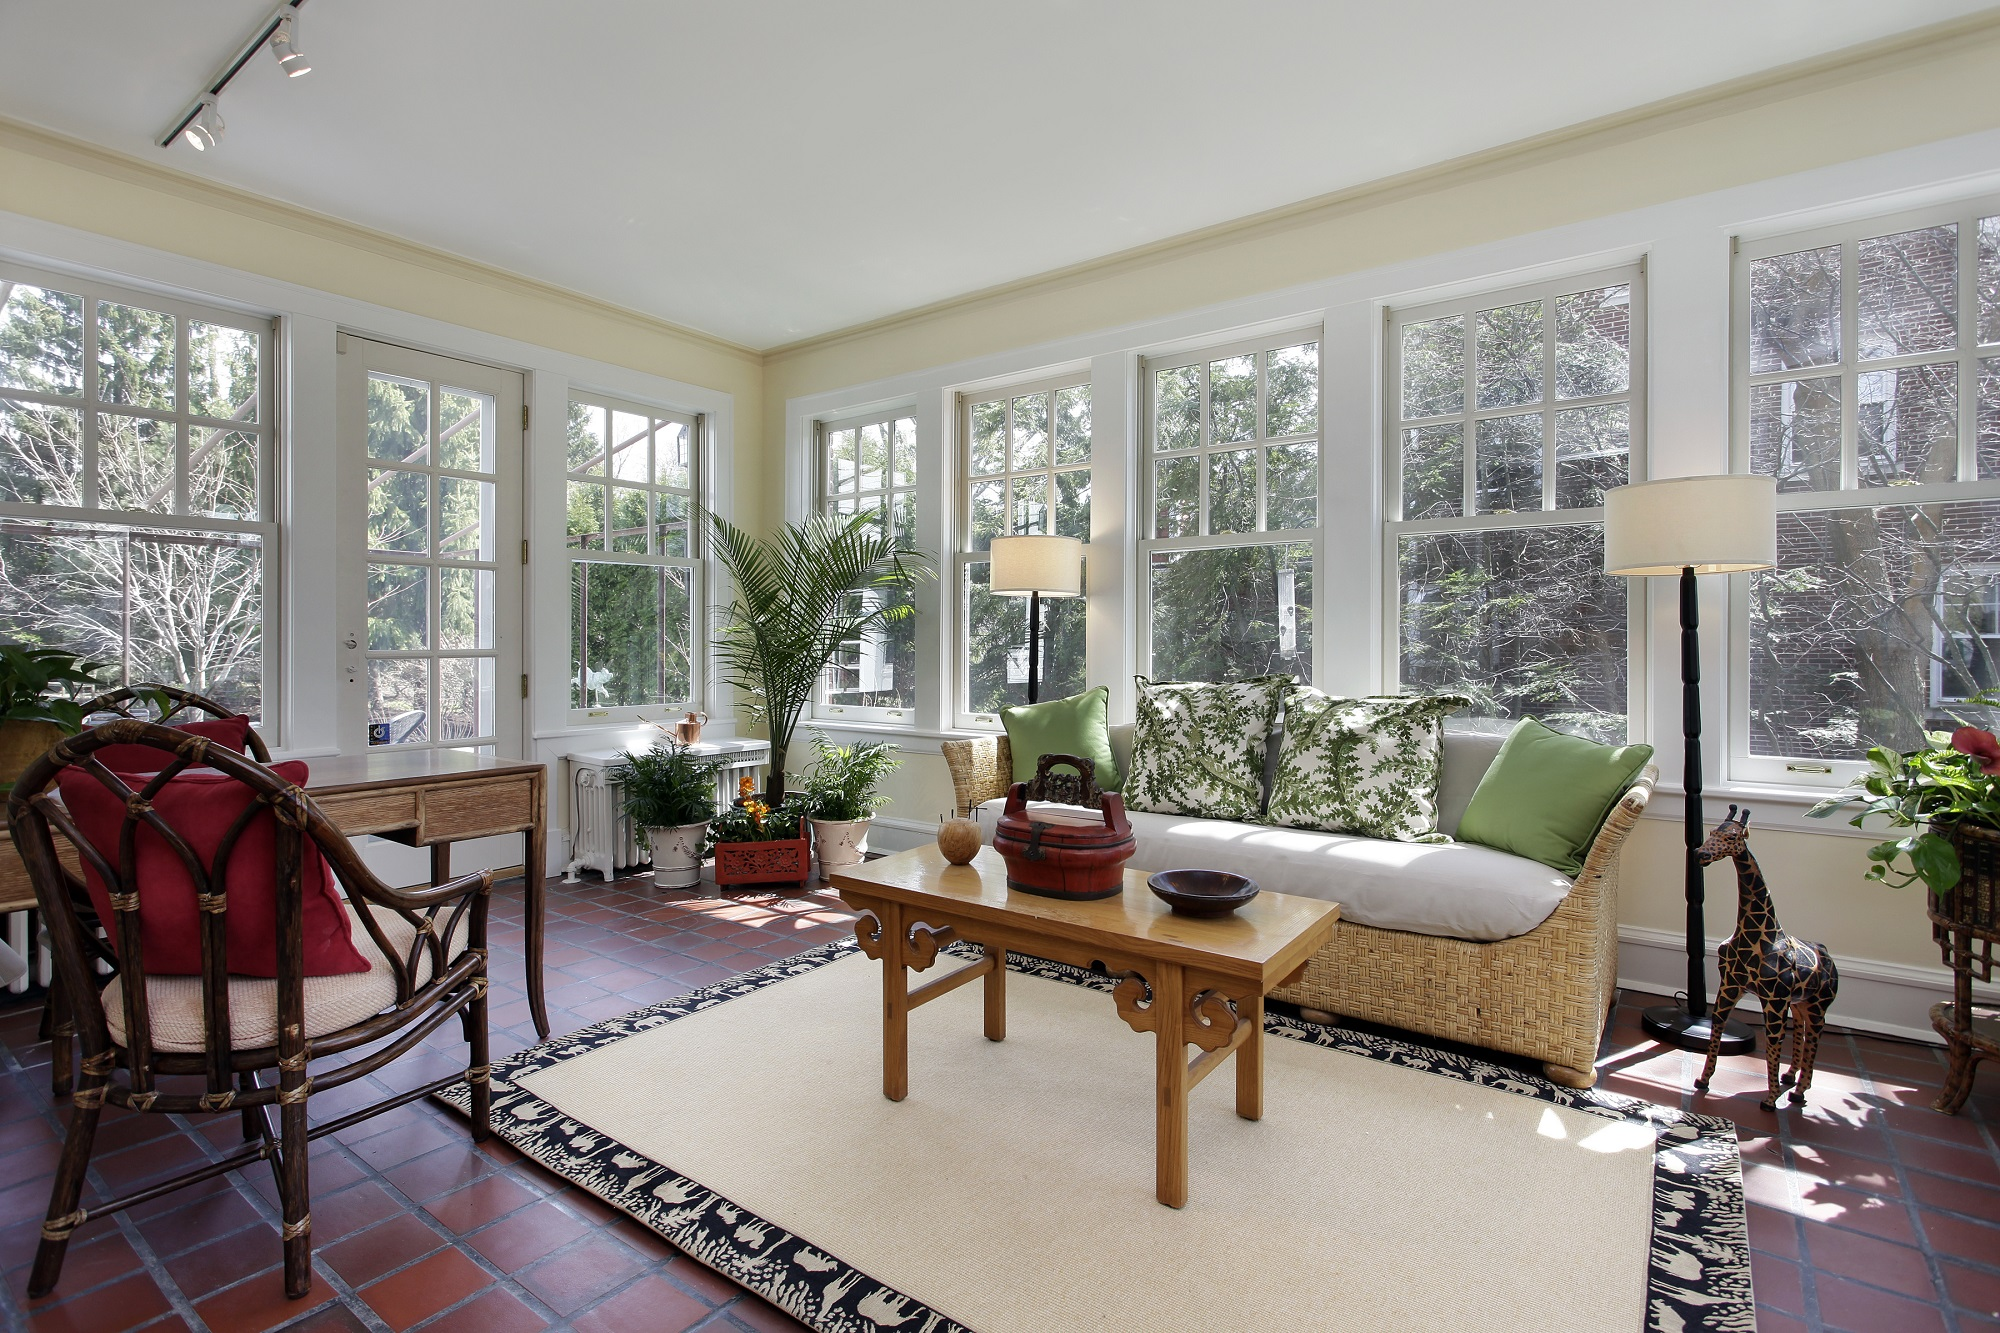 Sunroom with red brick flooring